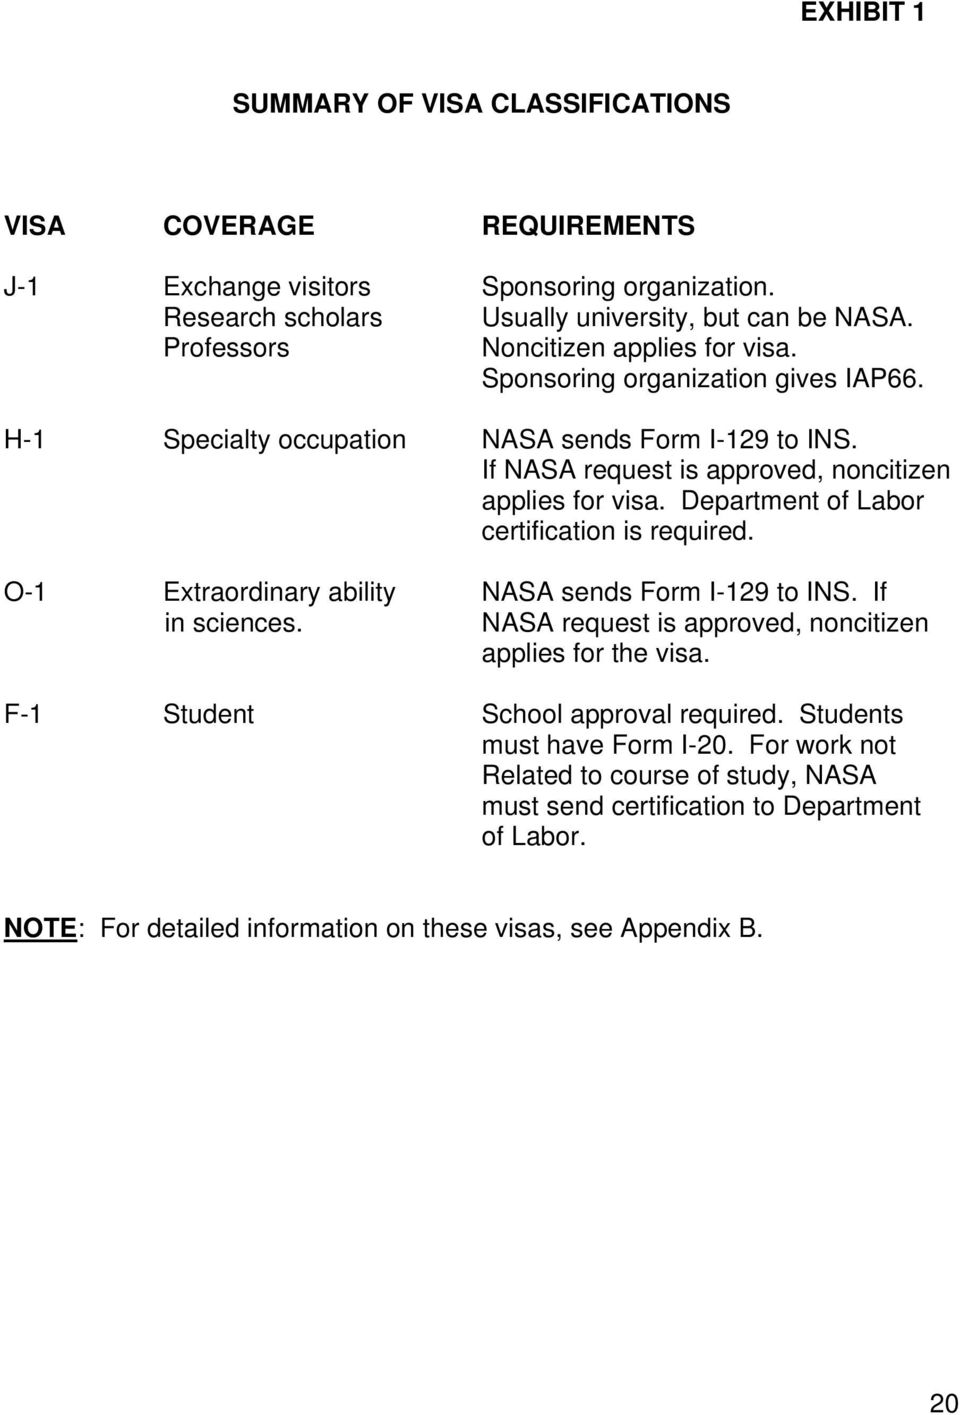 Department of Labor certification is required. O-1 Extraordinary ability NASA sends Form I-129 to INS. If in sciences. NASA request is approved, noncitizen applies for the visa.